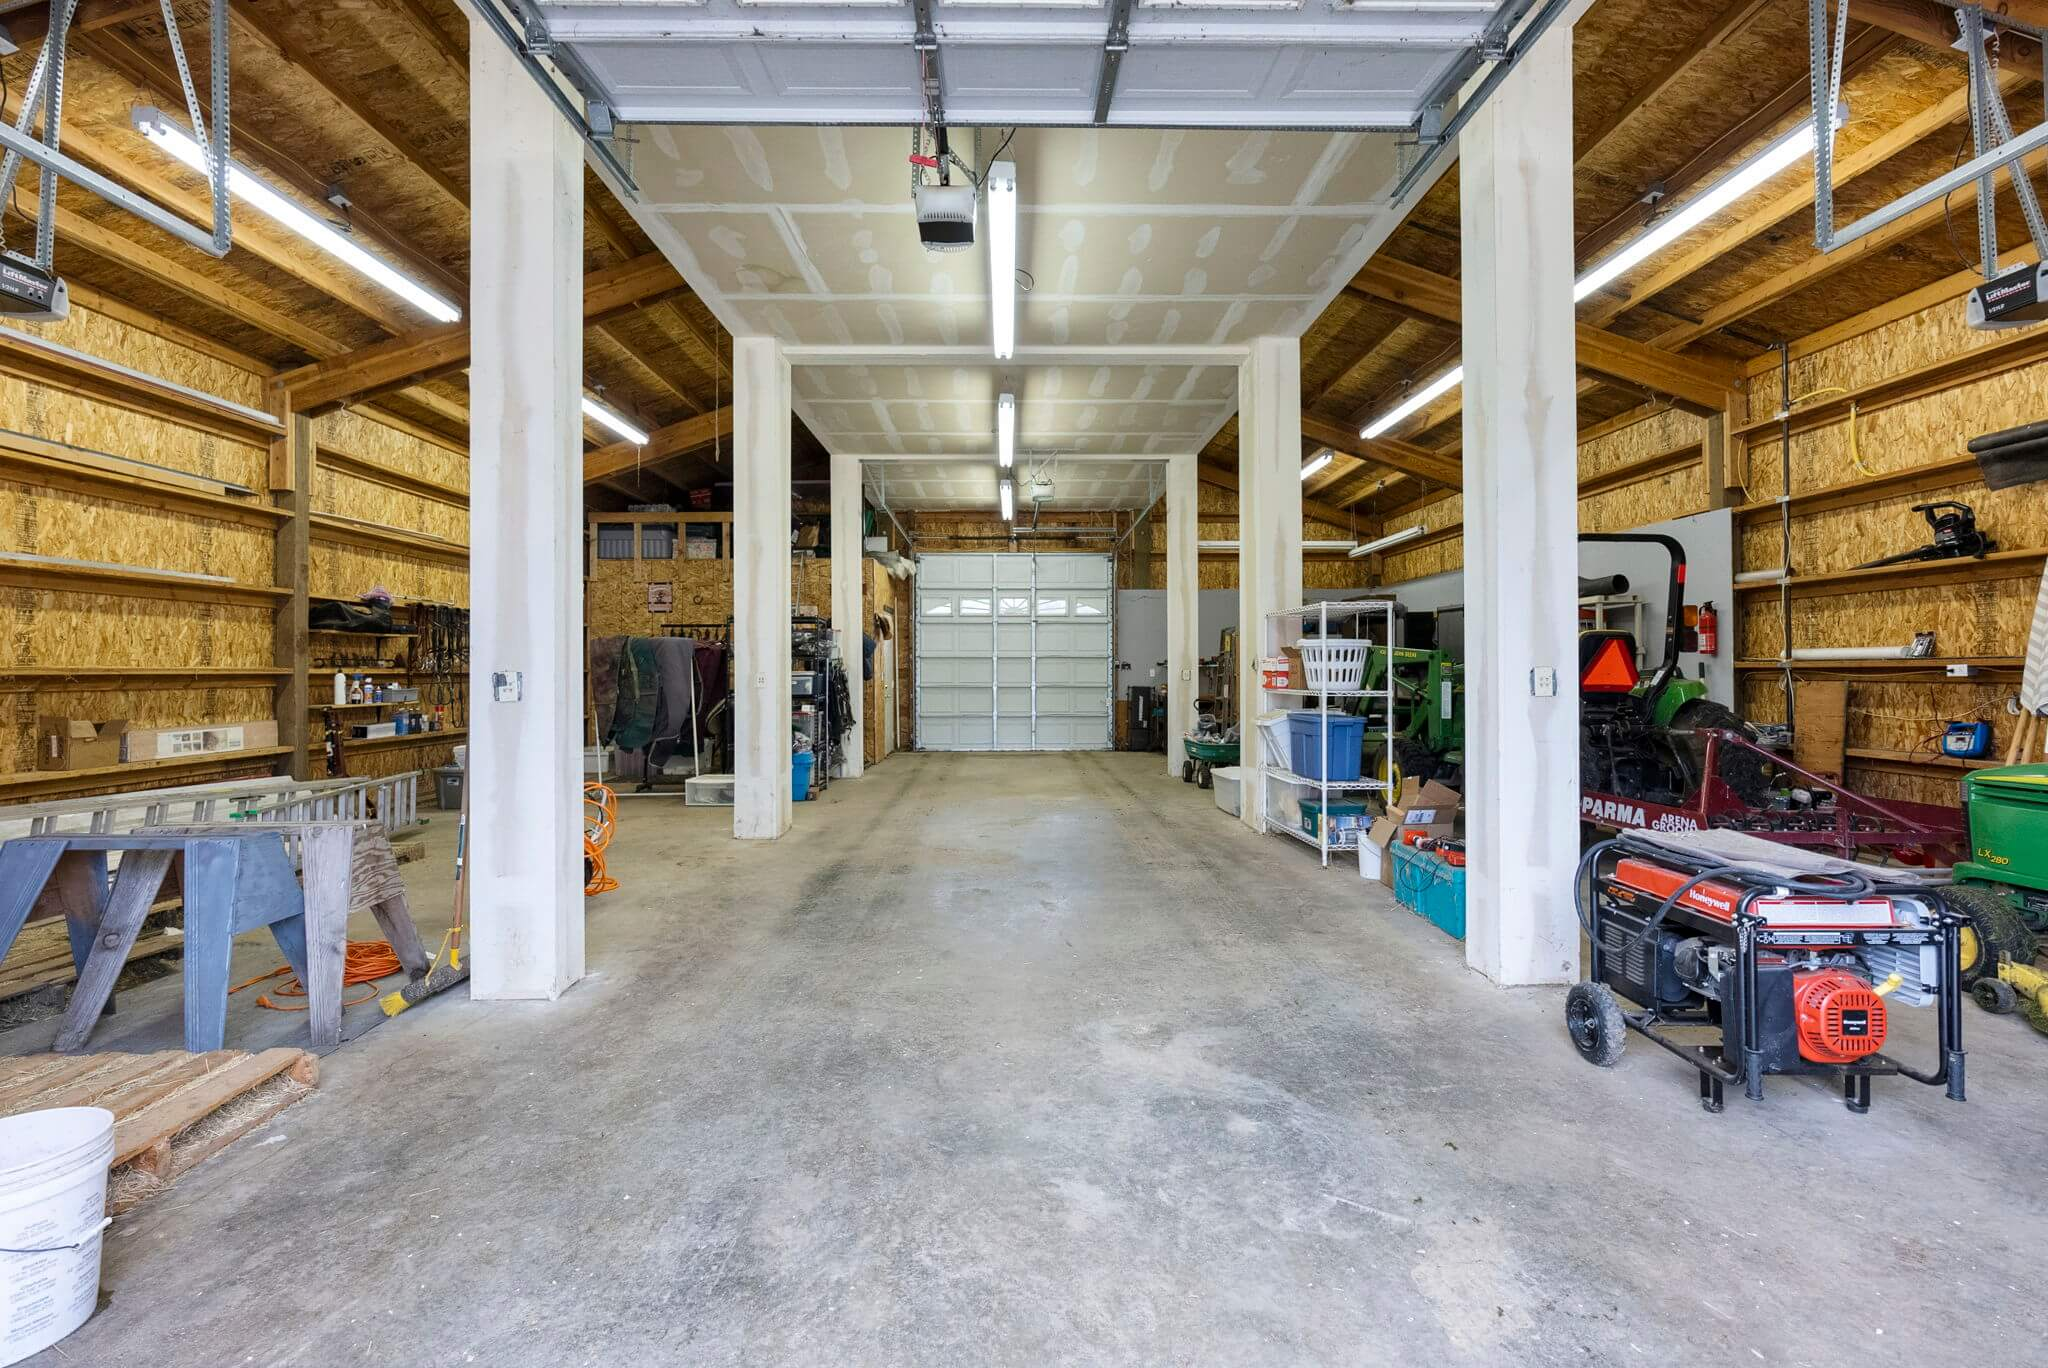 Newer barn with concrete floors is currently used as a shop but could make an excellent show horse barn with the addition of stalls